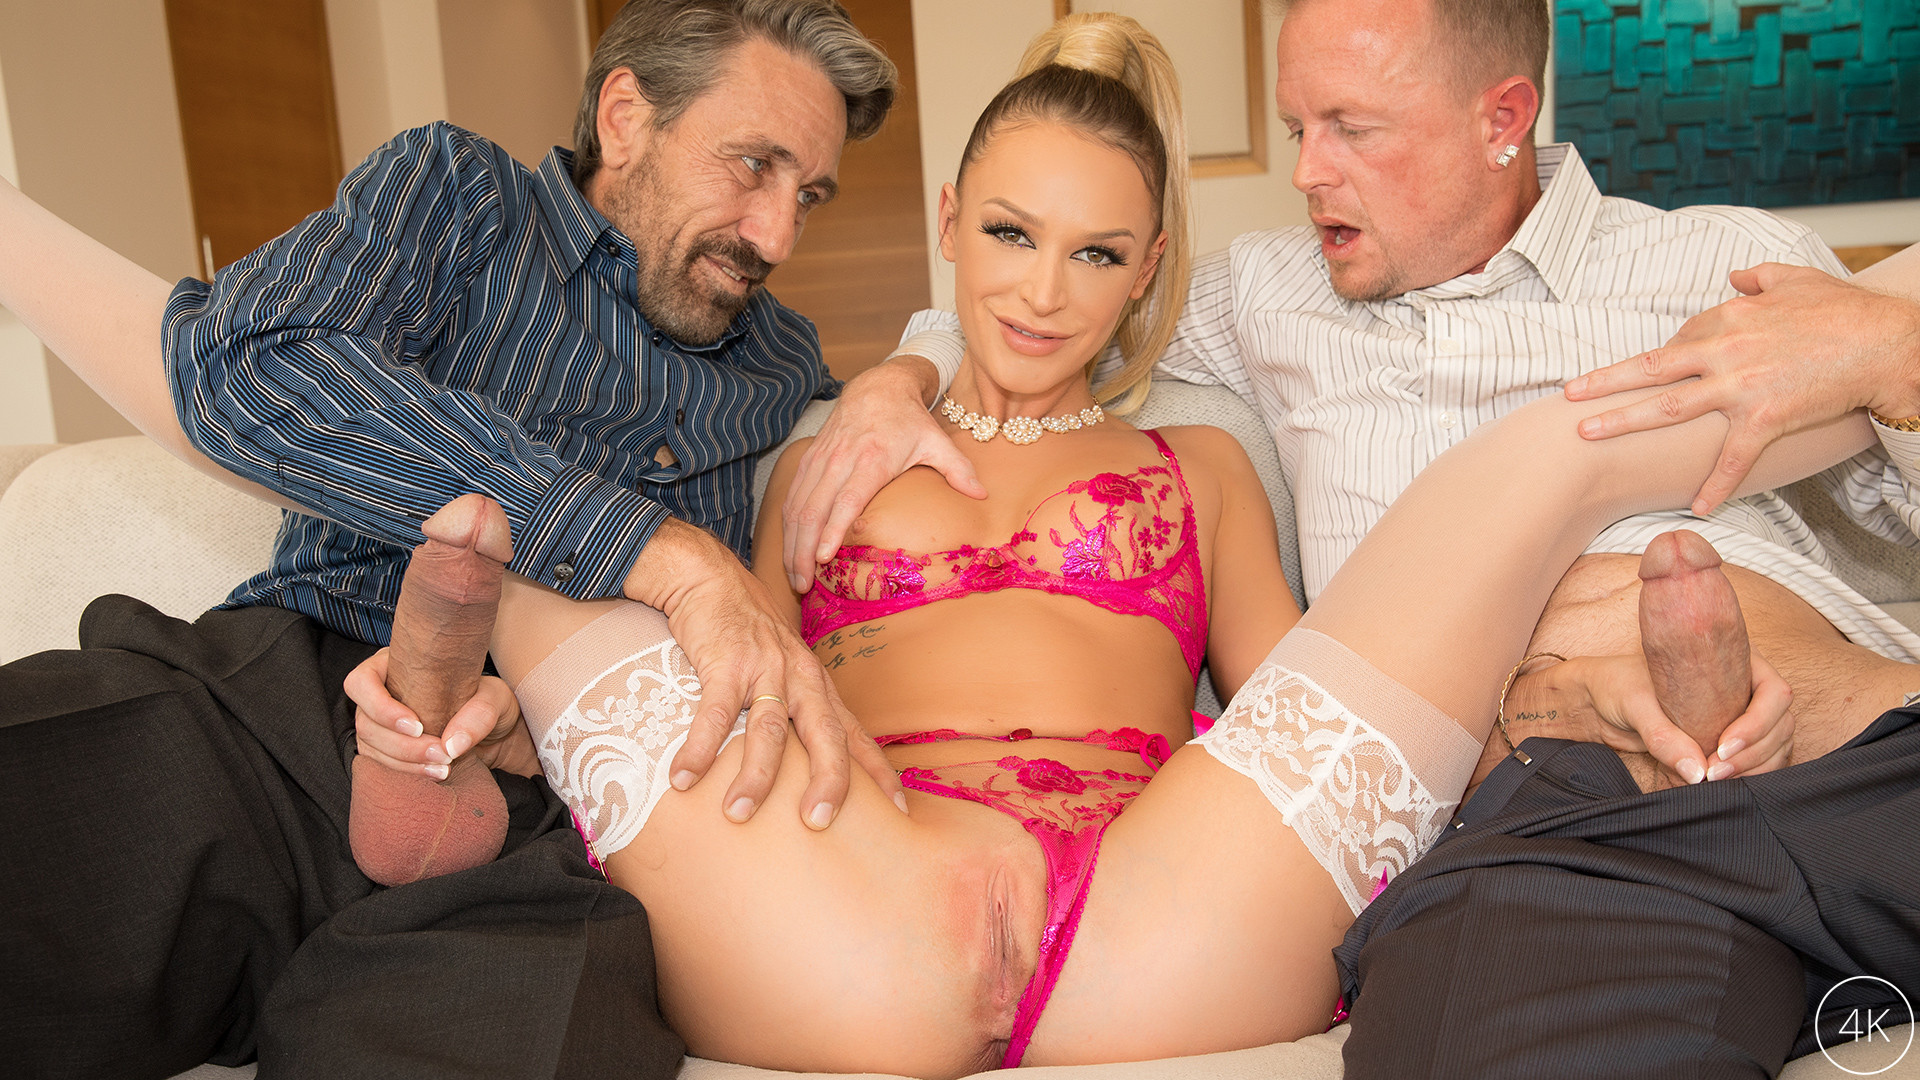 Download JulesJordan.com - Emma Hix Double Penetration